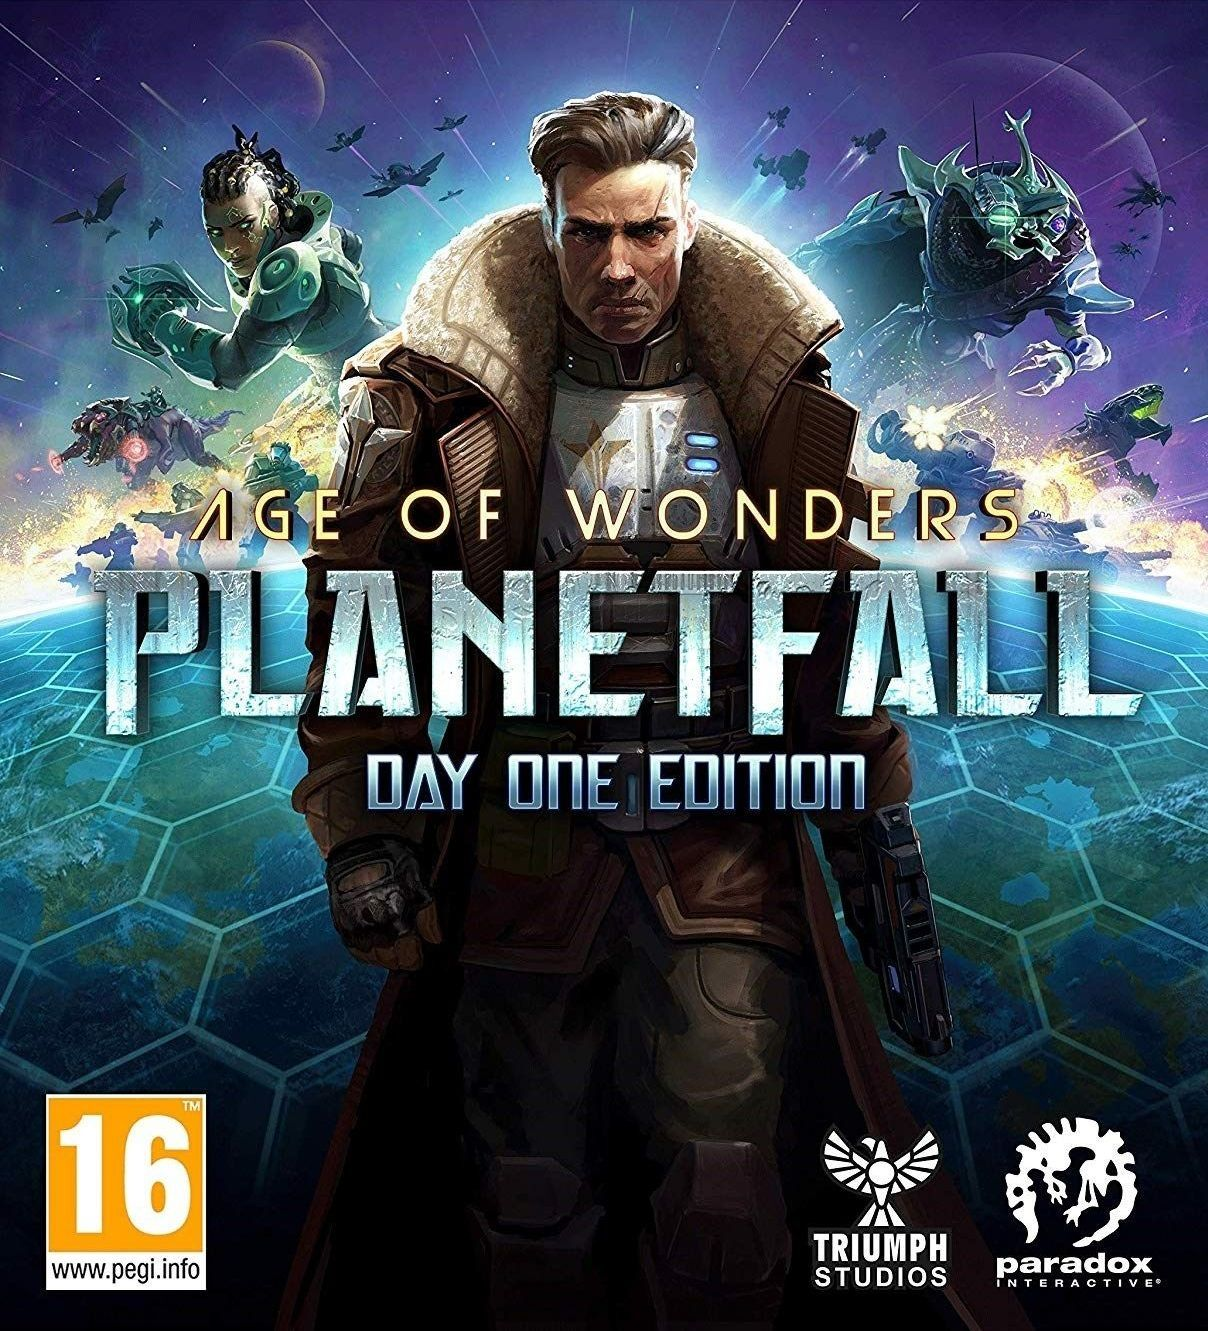 Age of Wonders: Planetfall - Day One Edition (PC) - 1